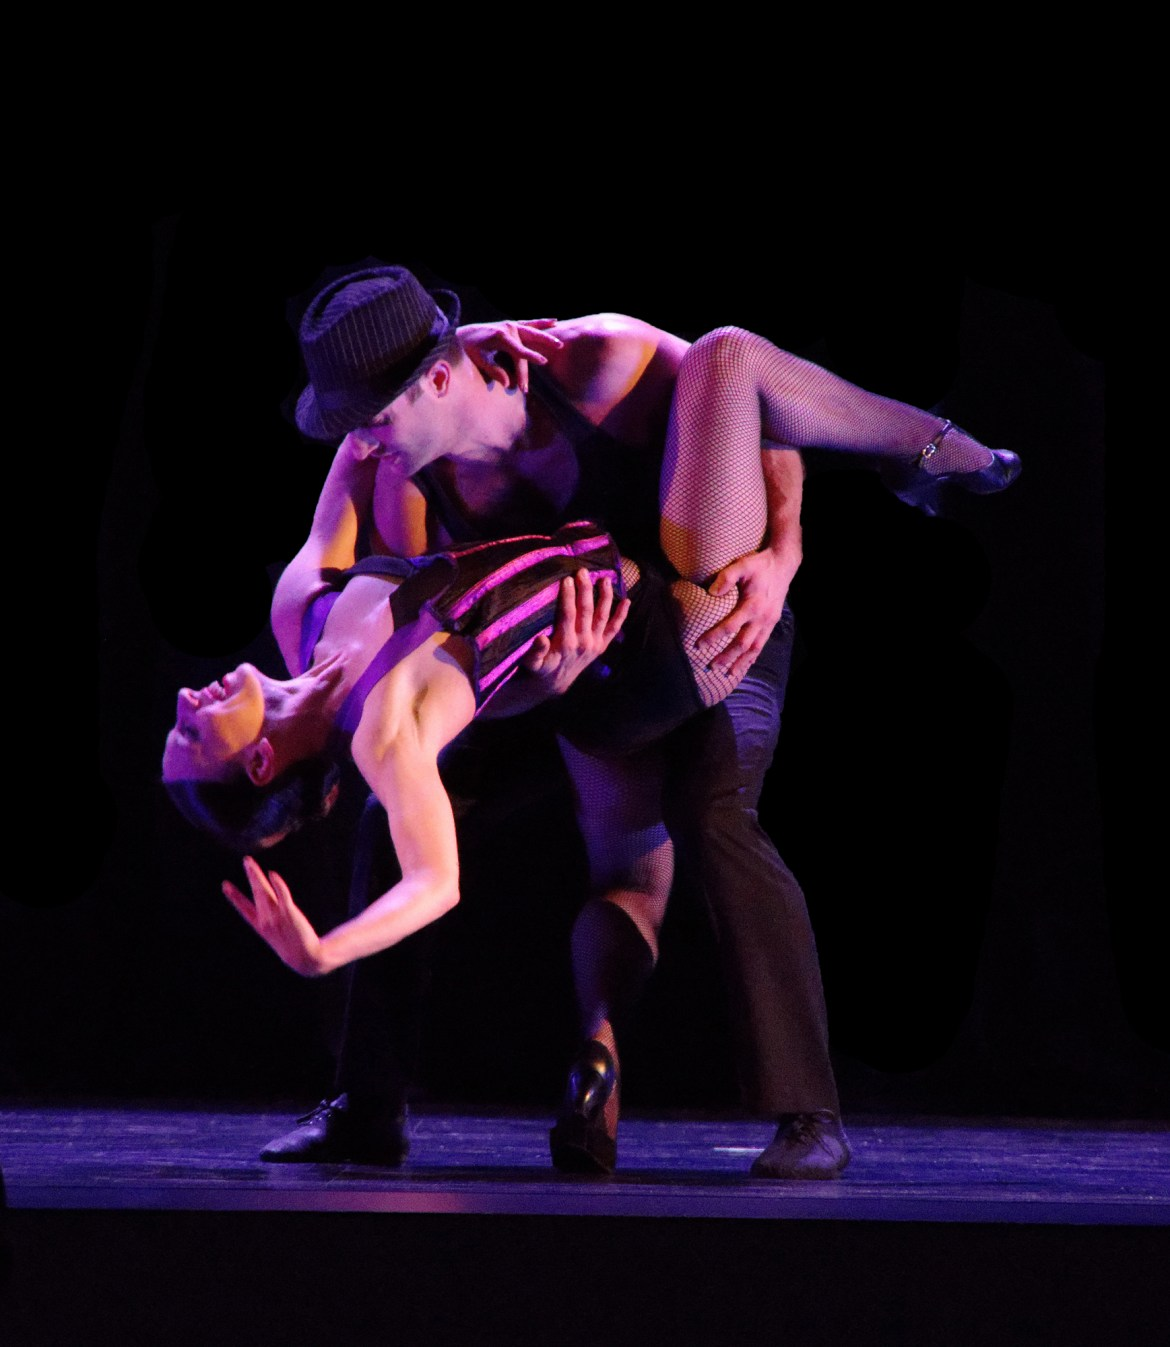 Maeghan McHale and Zachary Heller (Courtesy of Giordano Dance Chicago)